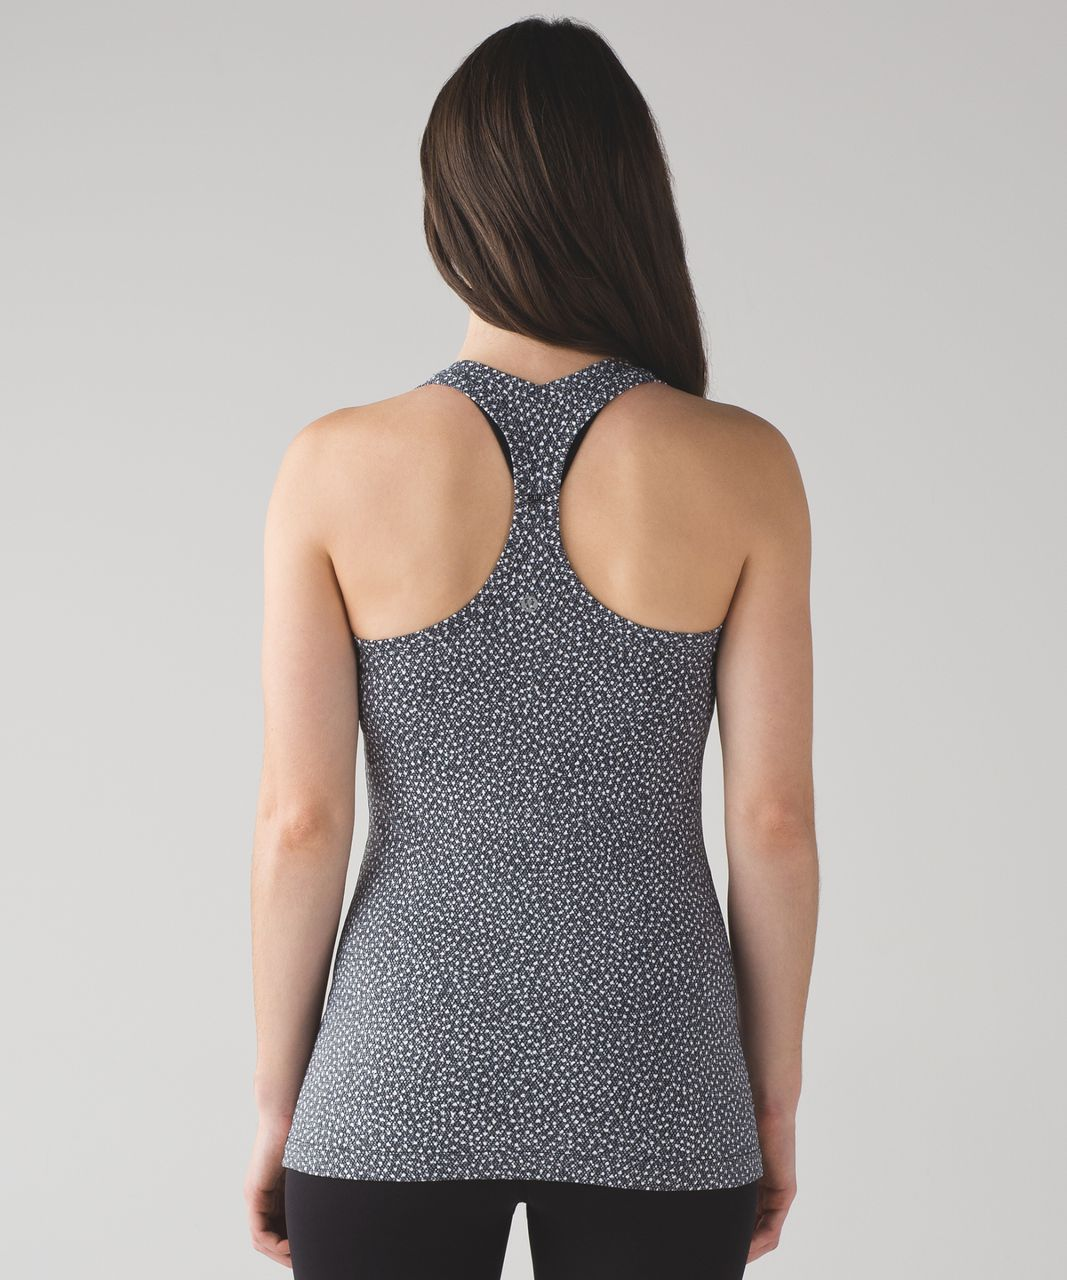 Lululemon Cool Racerback II - Frozen Fizz White Black